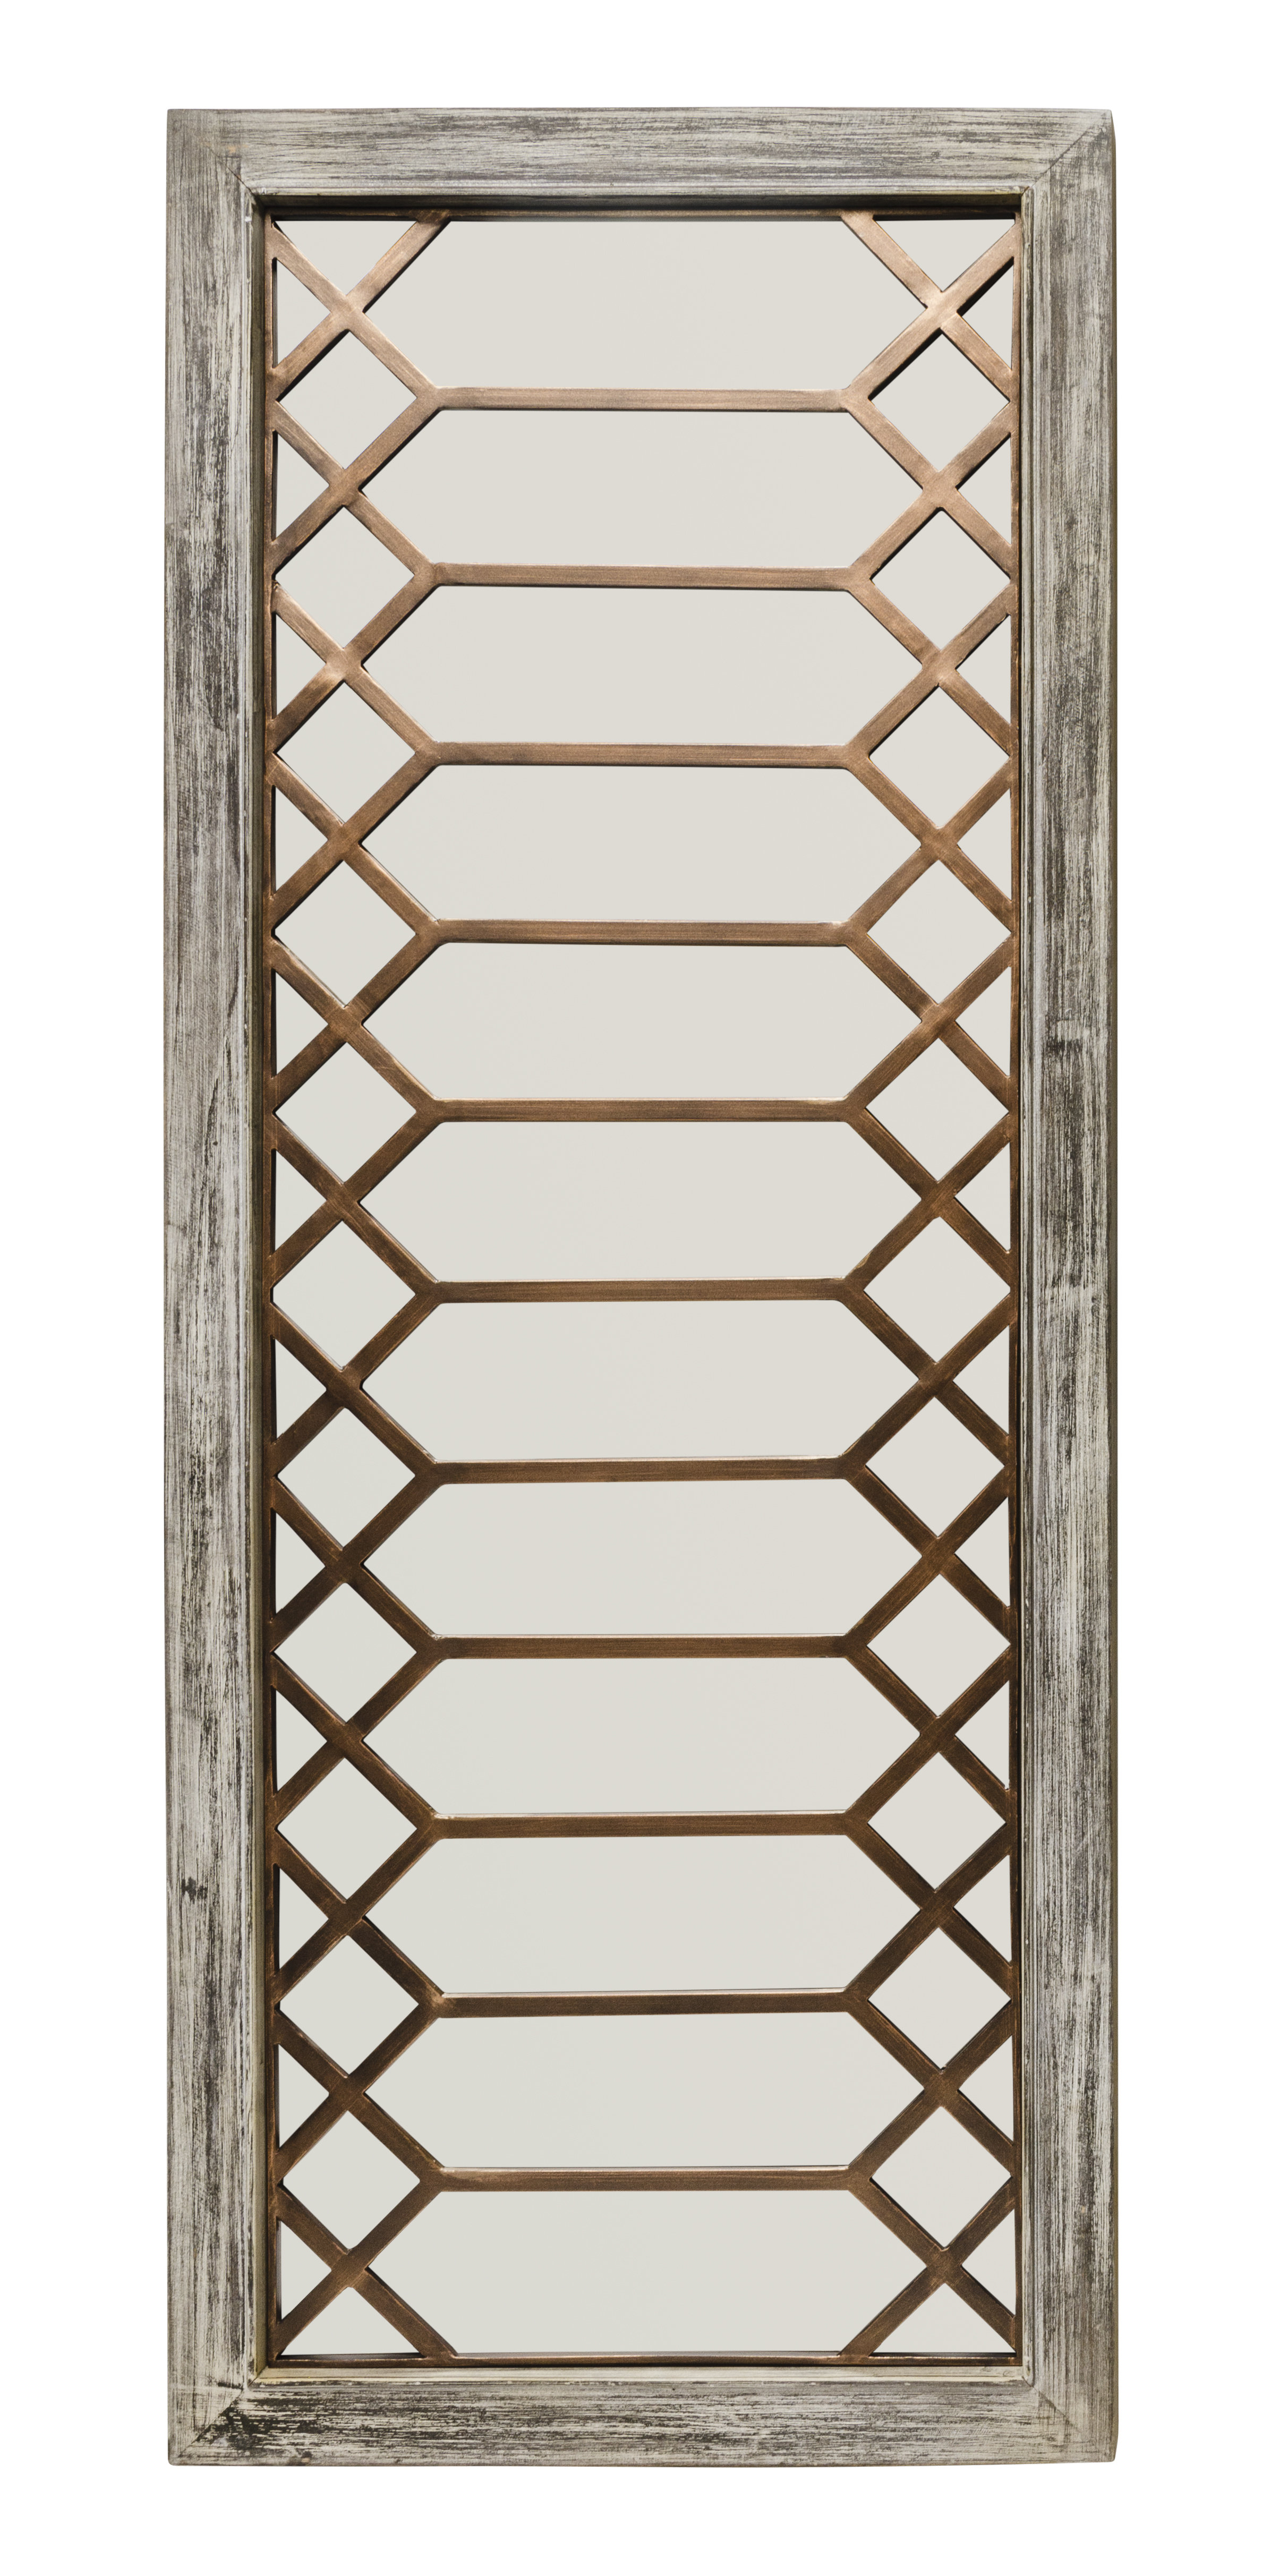 Lark Manor Polito Cottage/country Wall Mirror With Regard To Yatendra Cottage/country Beveled Accent Mirrors (View 6 of 20)